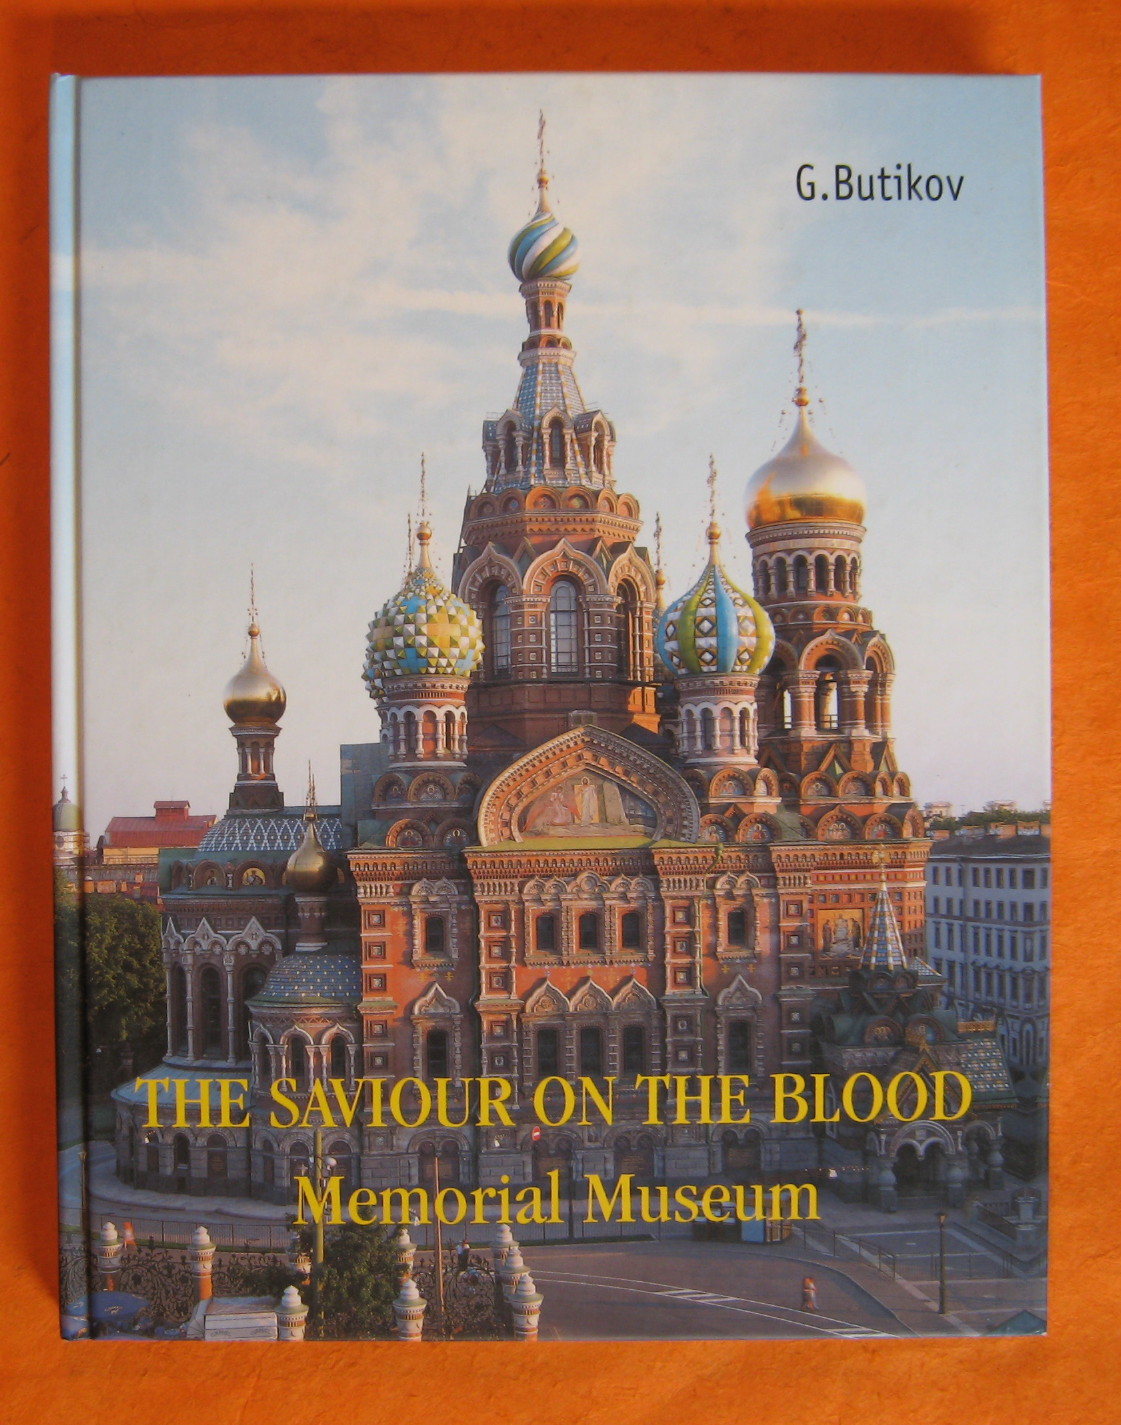 Saviour on the Blood Memorial Museum: Alexander II and His Age, Butikov, G.